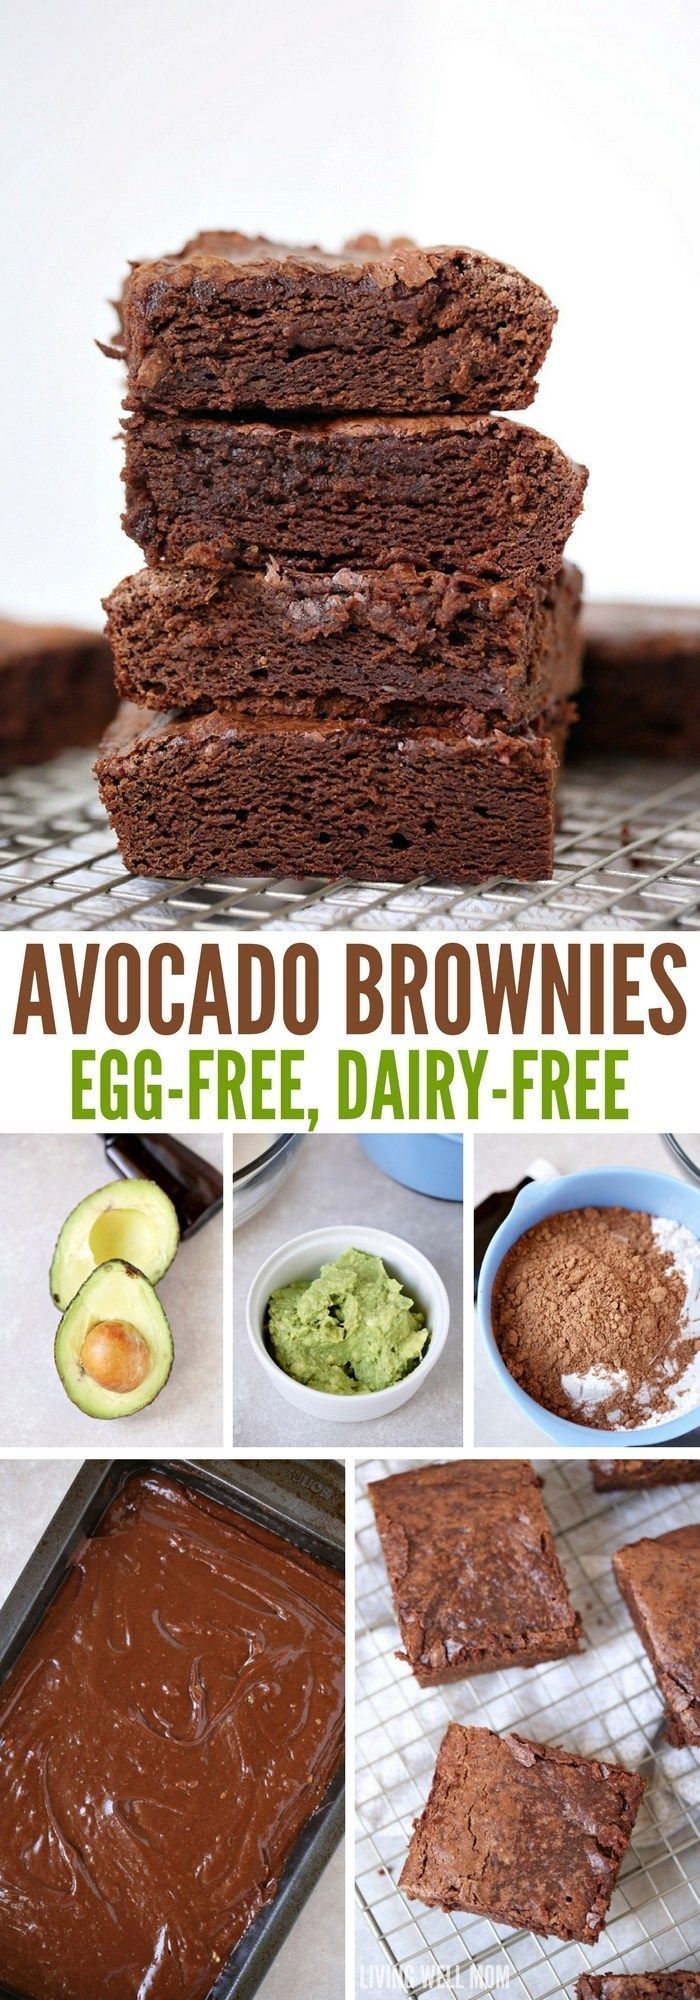 Guilt-Free Avocado Brownies with No Eggs